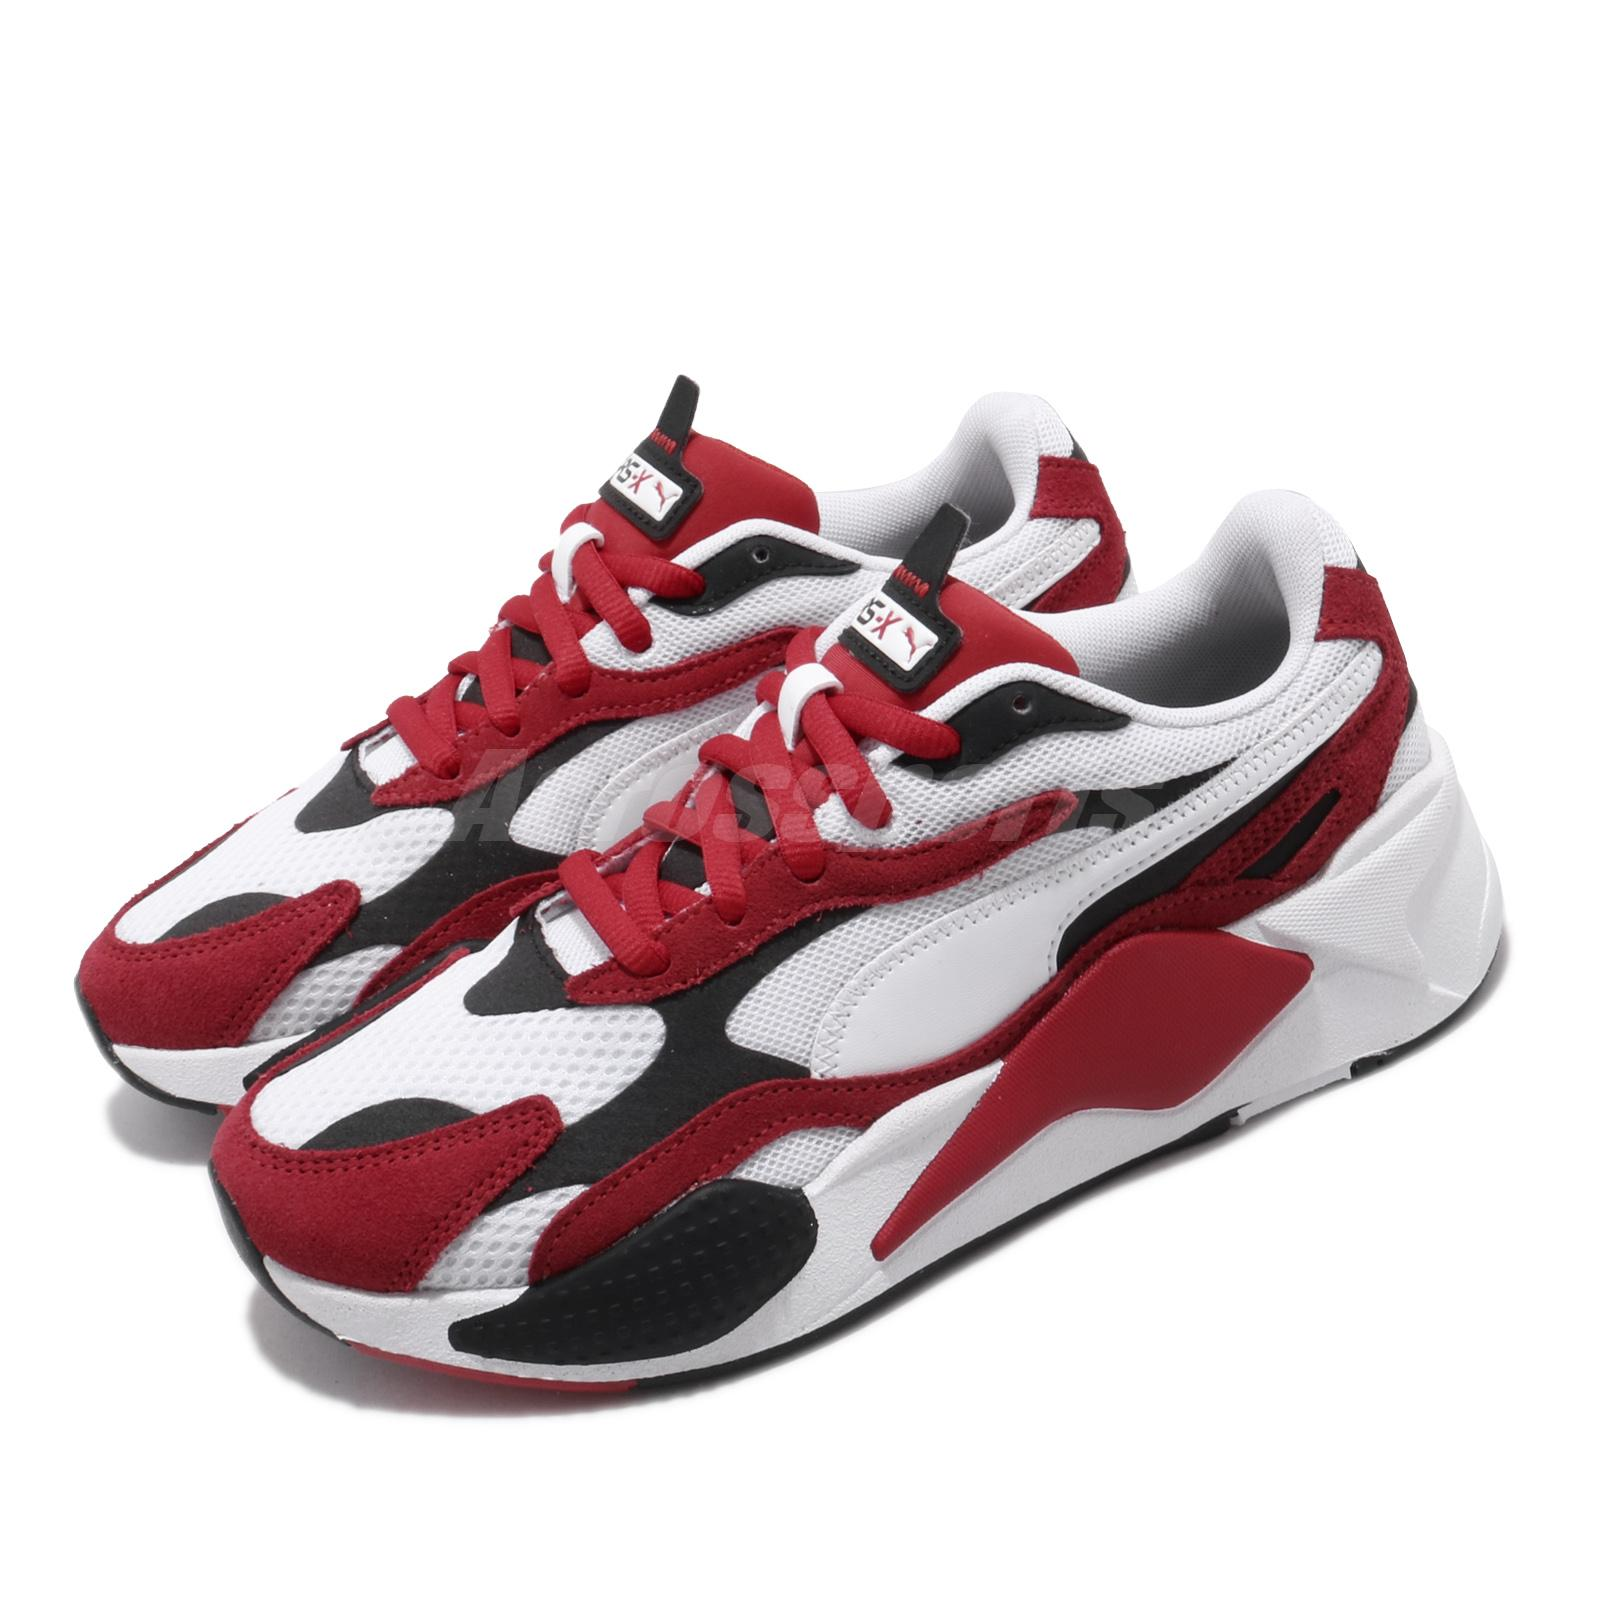 Details about Puma RS-X3 Super Running System White Red Men Women Unisex  Shoes 372884-01